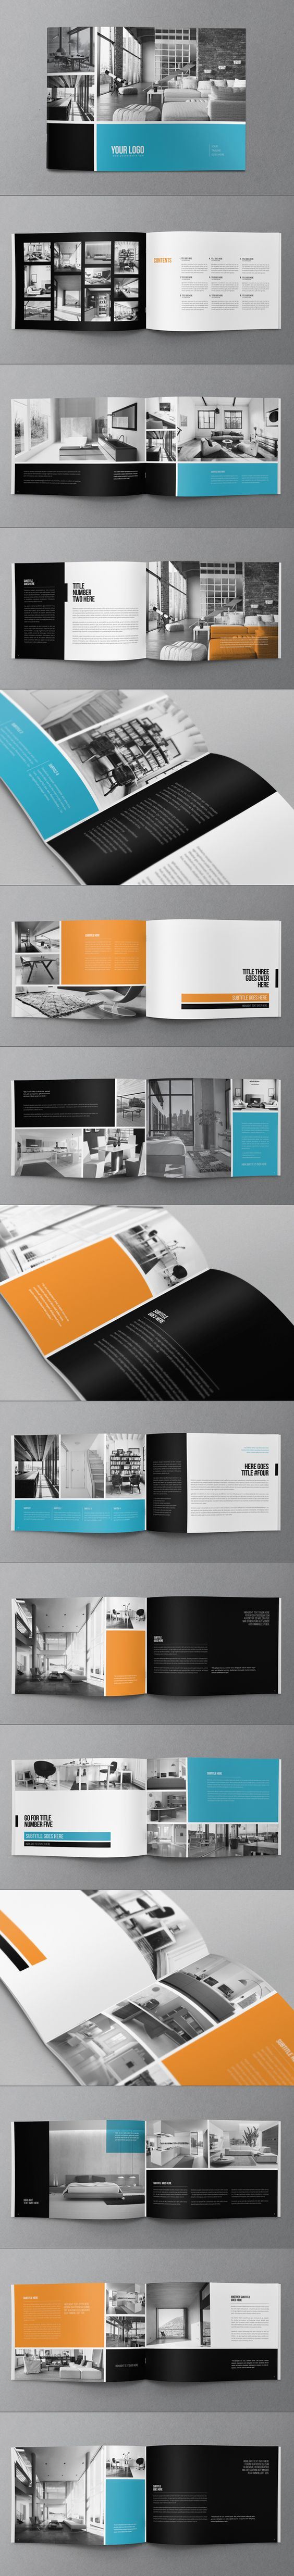 Minimal Modern Brochure  Brochures Layouts And Company Profile